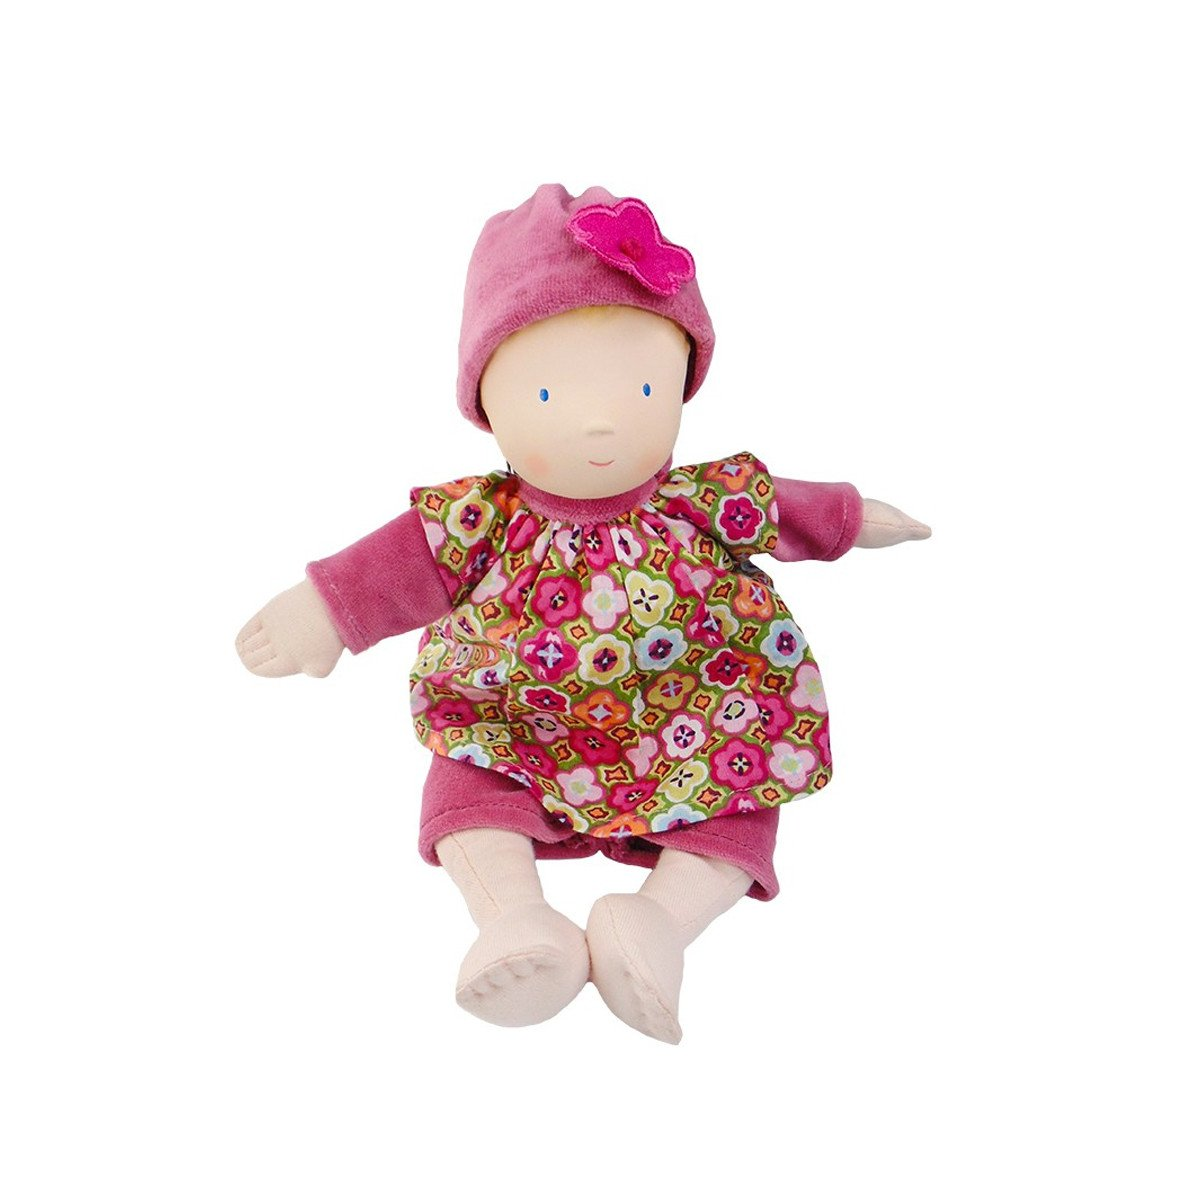 Ruby Natural Rubber Baby Doll Little Earth Nest Dolls, Playsets & Toy Figures at Little Earth Nest Eco Shop